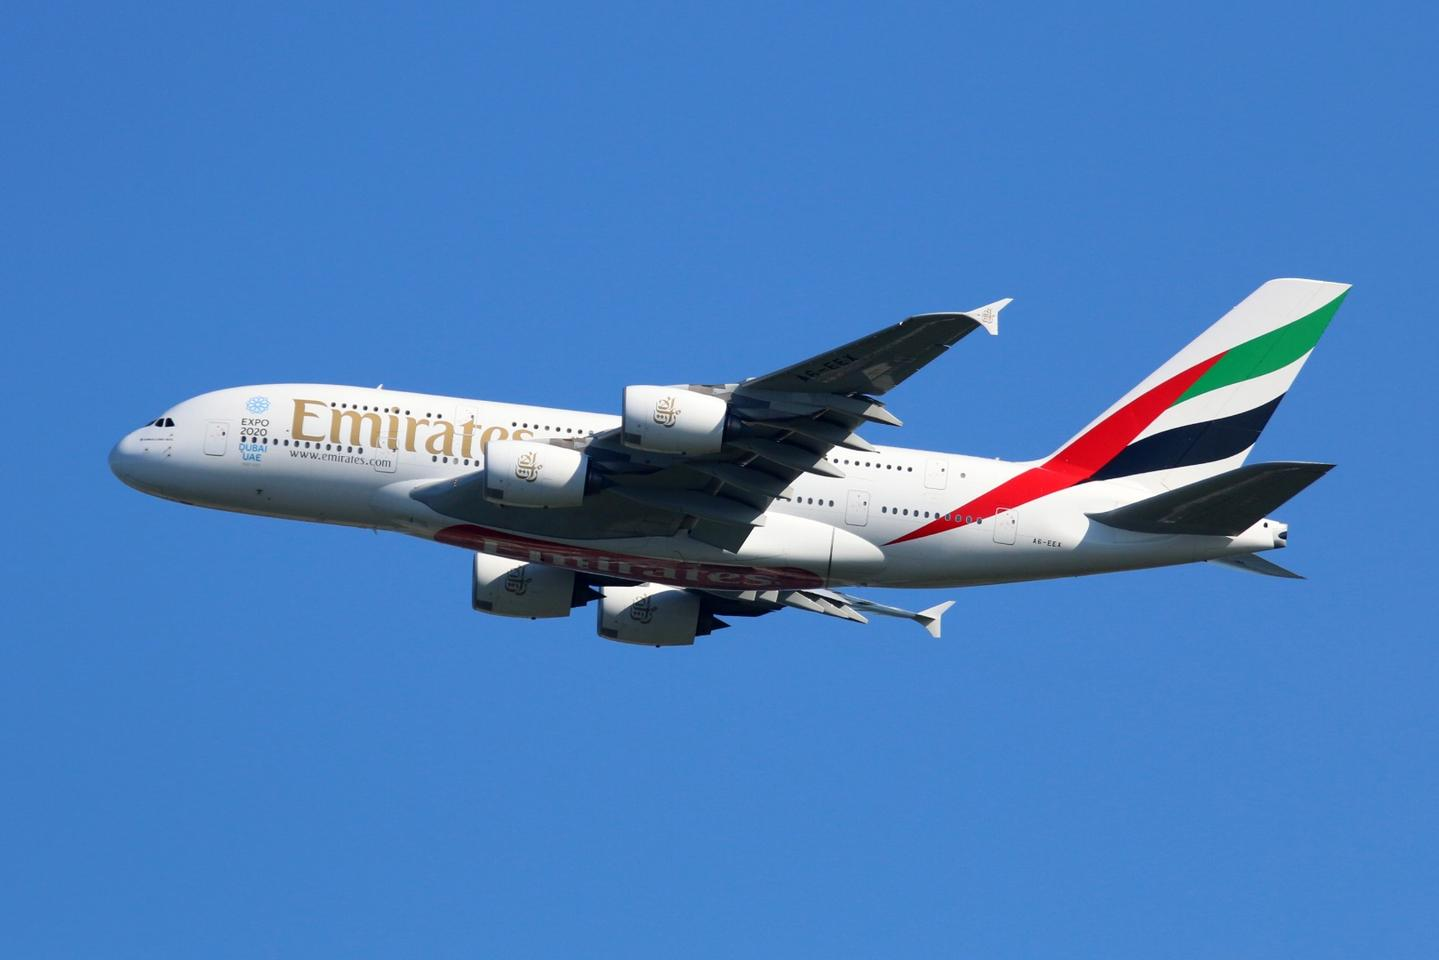 The Airbus A380 is the world's largest airliner, and Emirates flies more of them than any other airline